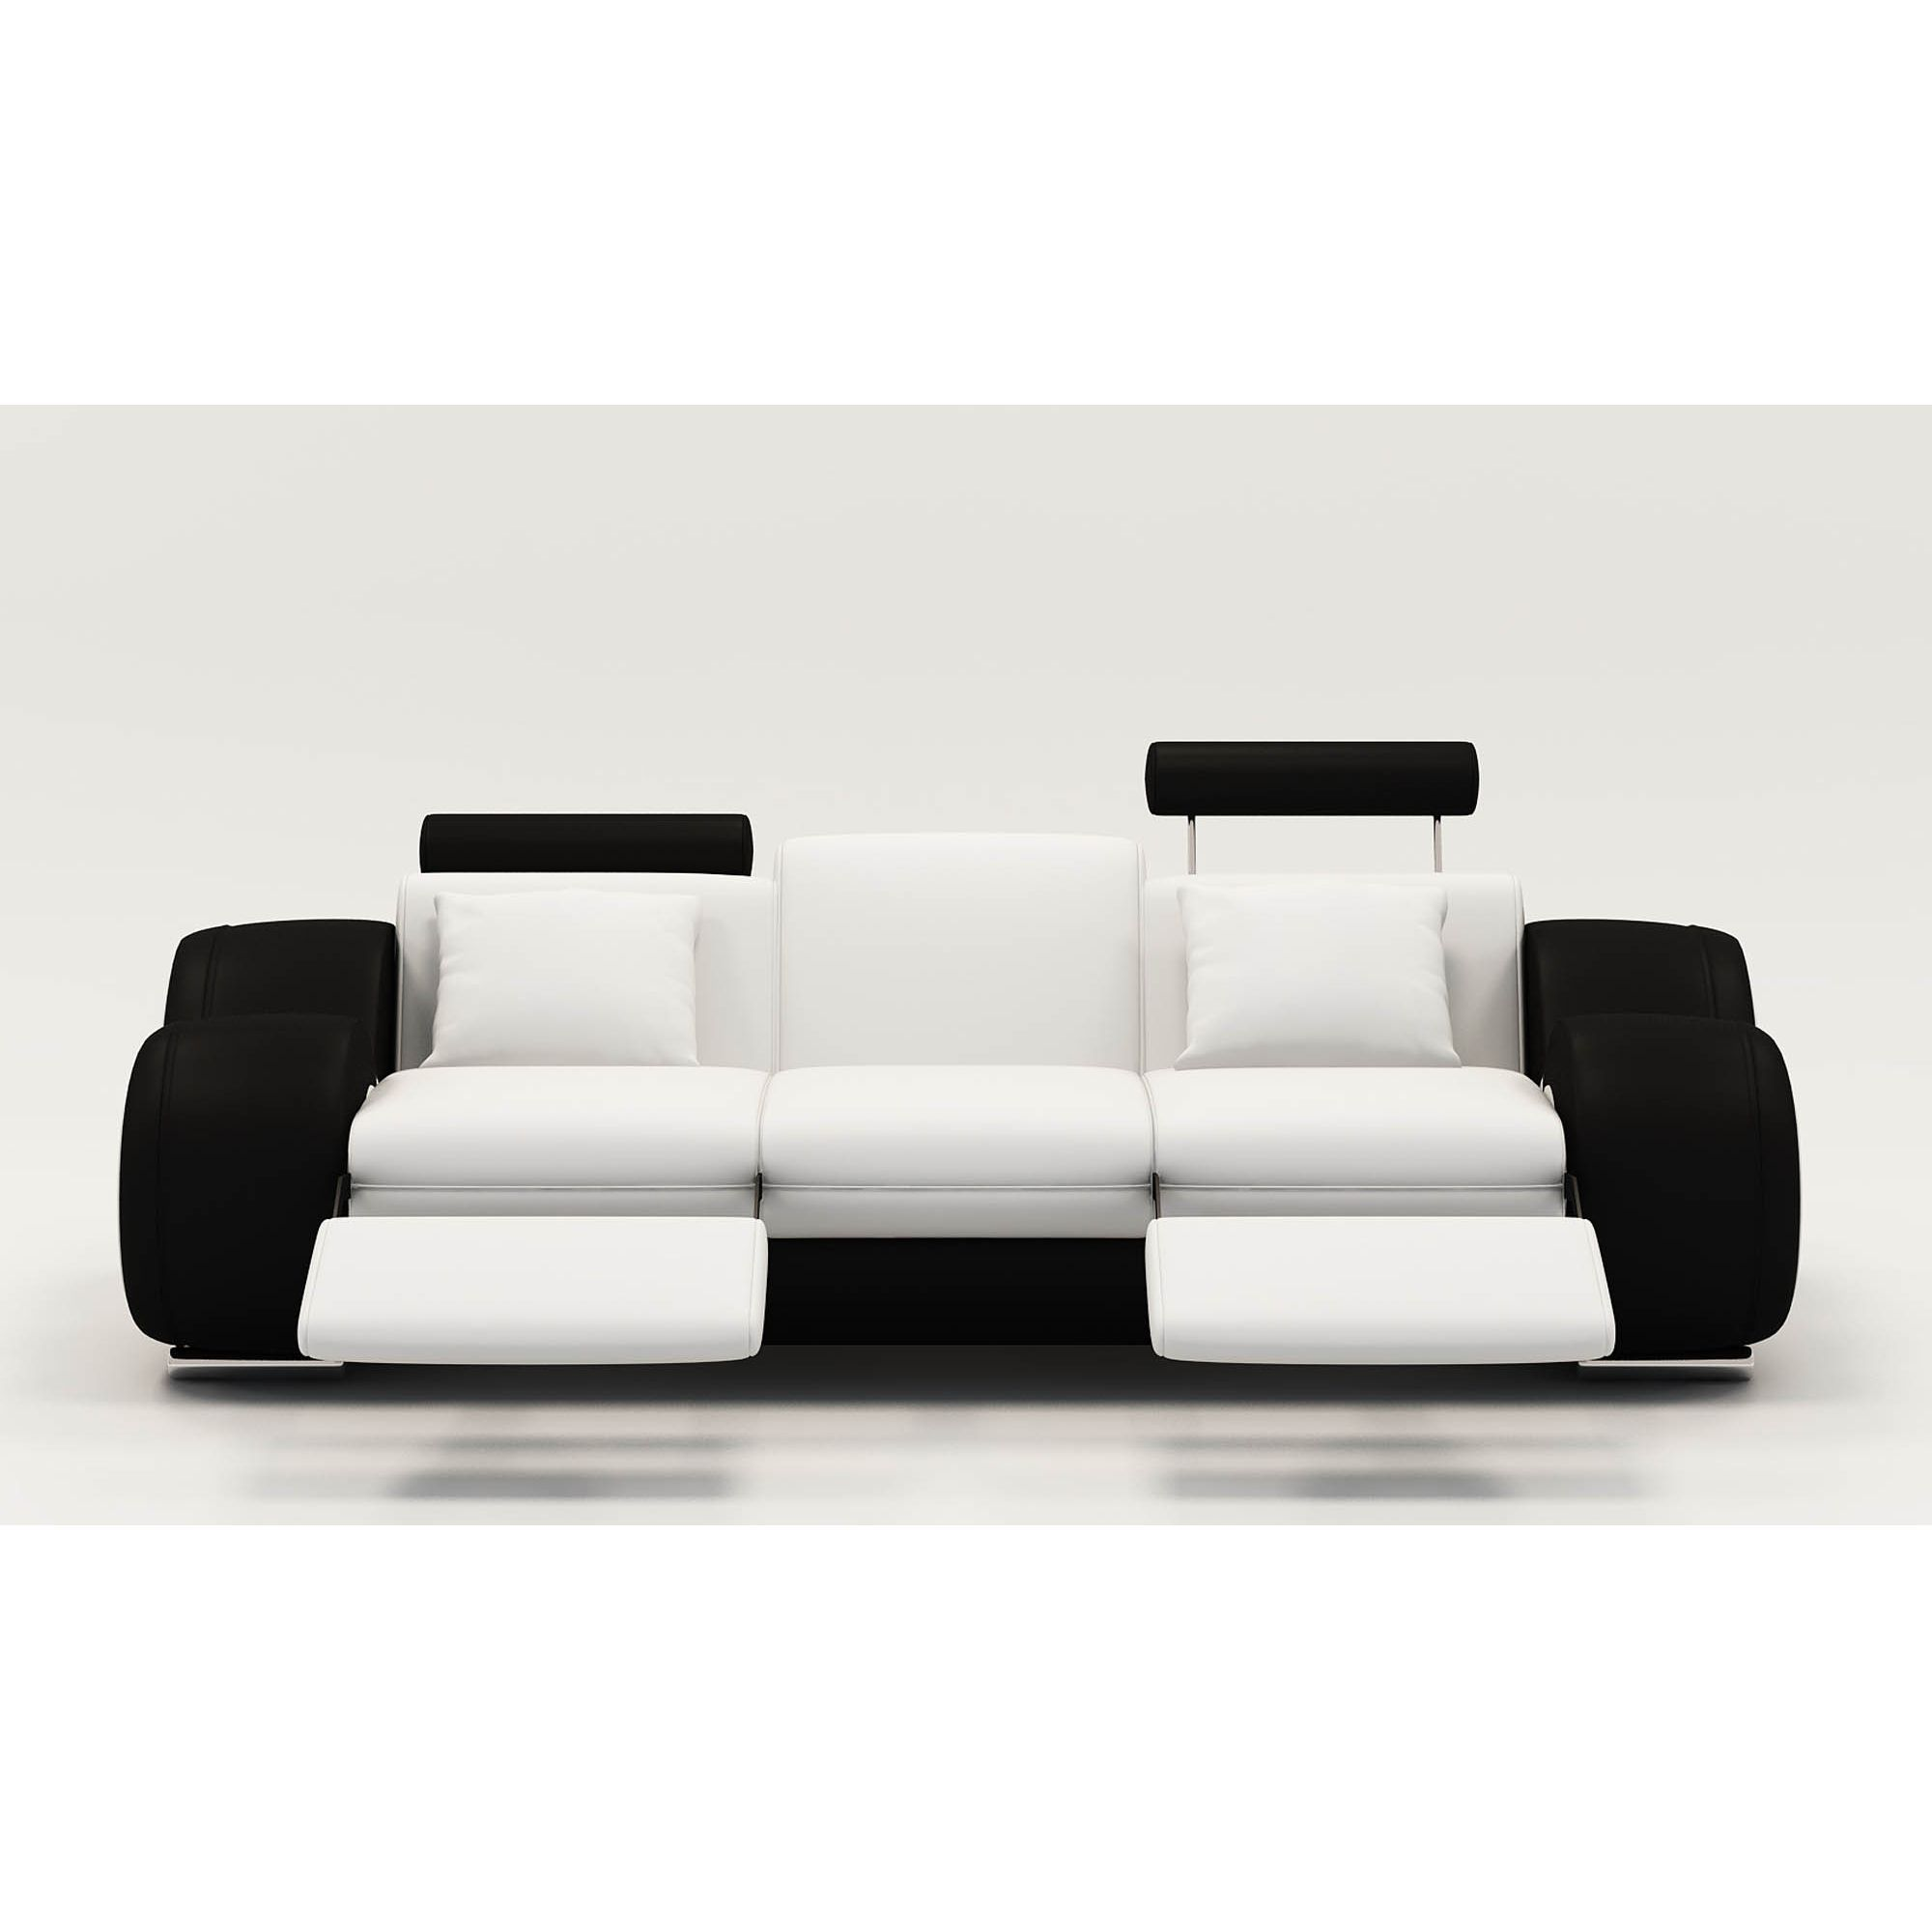 deco in paris ensemble canape relax design 3 2 1 places blanc et noir oslo. Black Bedroom Furniture Sets. Home Design Ideas